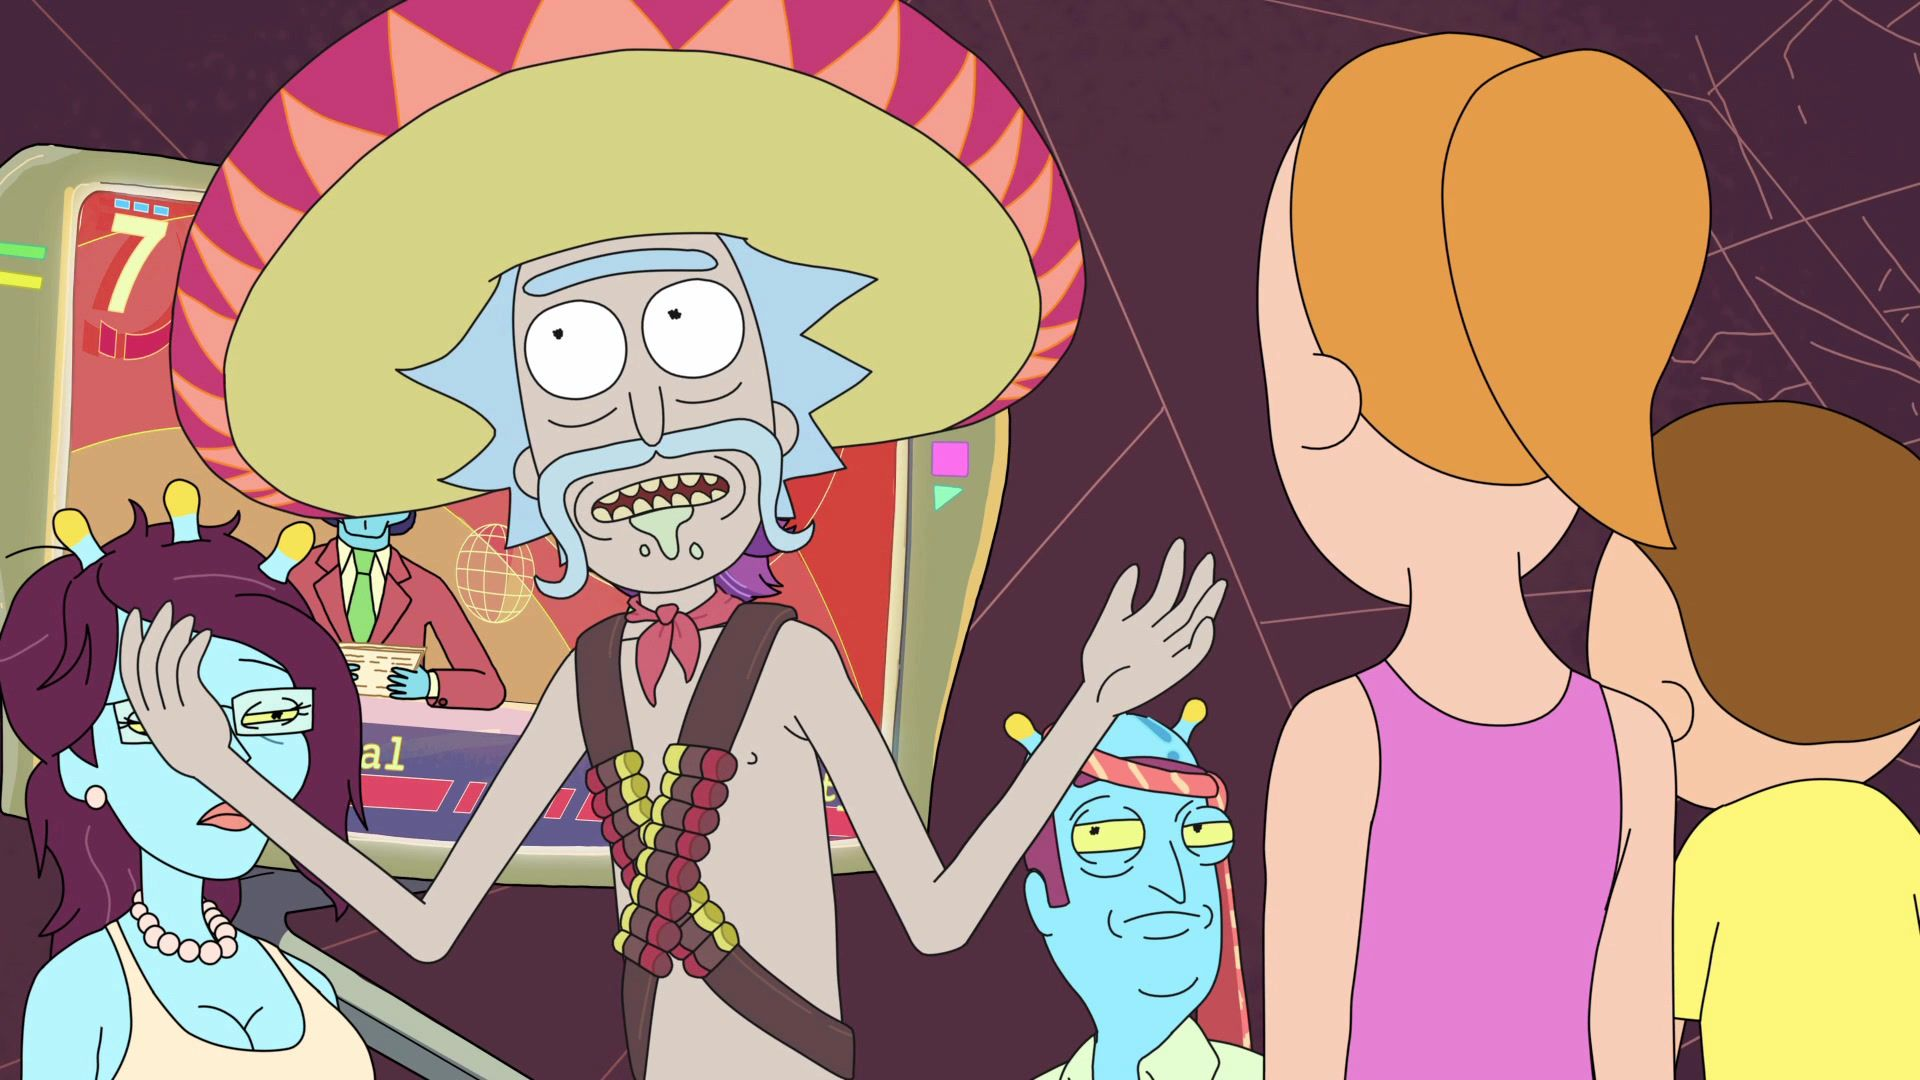 Mexican Rick In 2021 Rick And Morty Poster Rick And Morty Rick